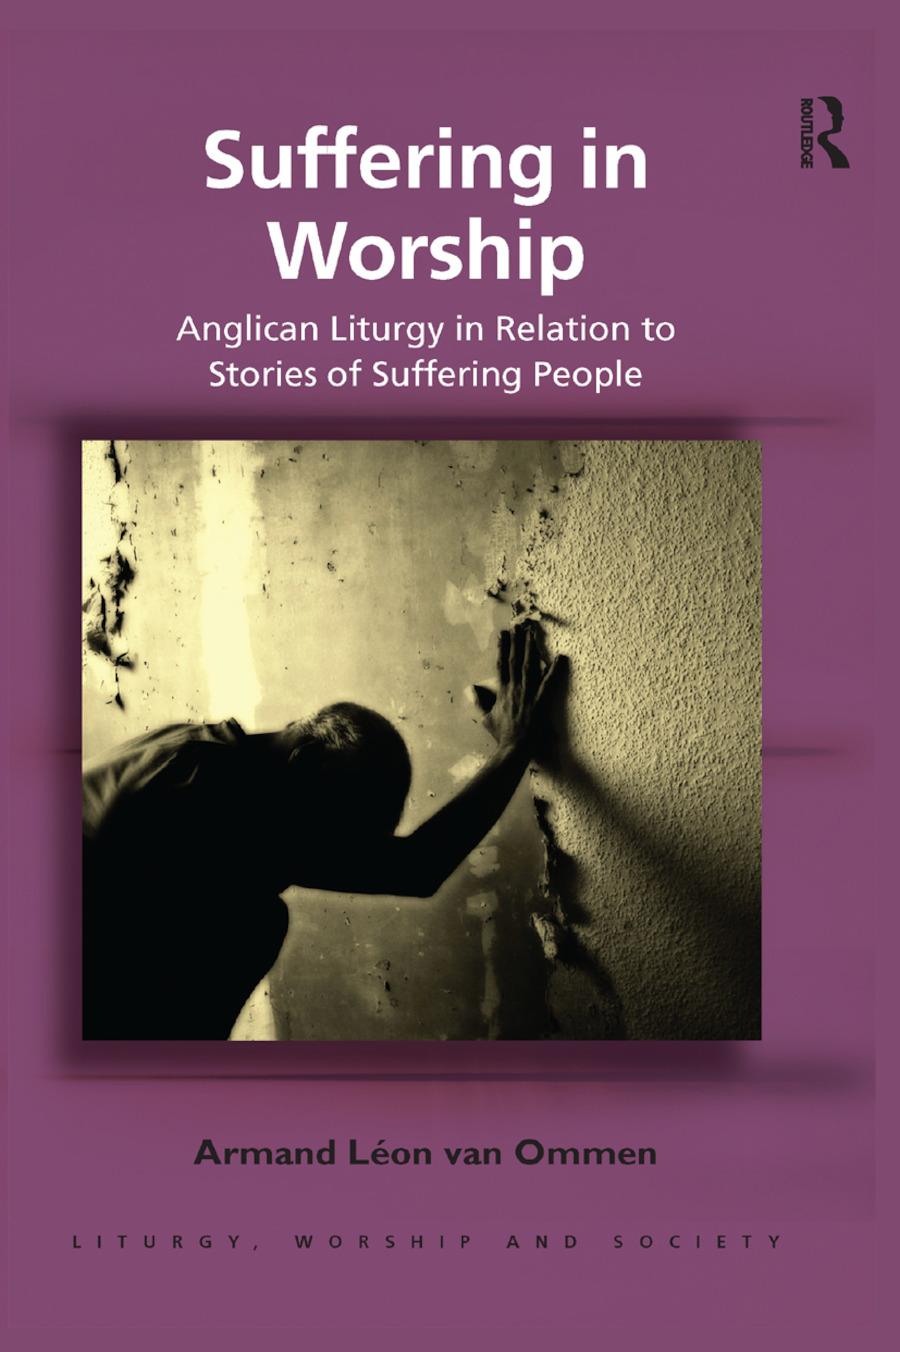 Suffering in Worship